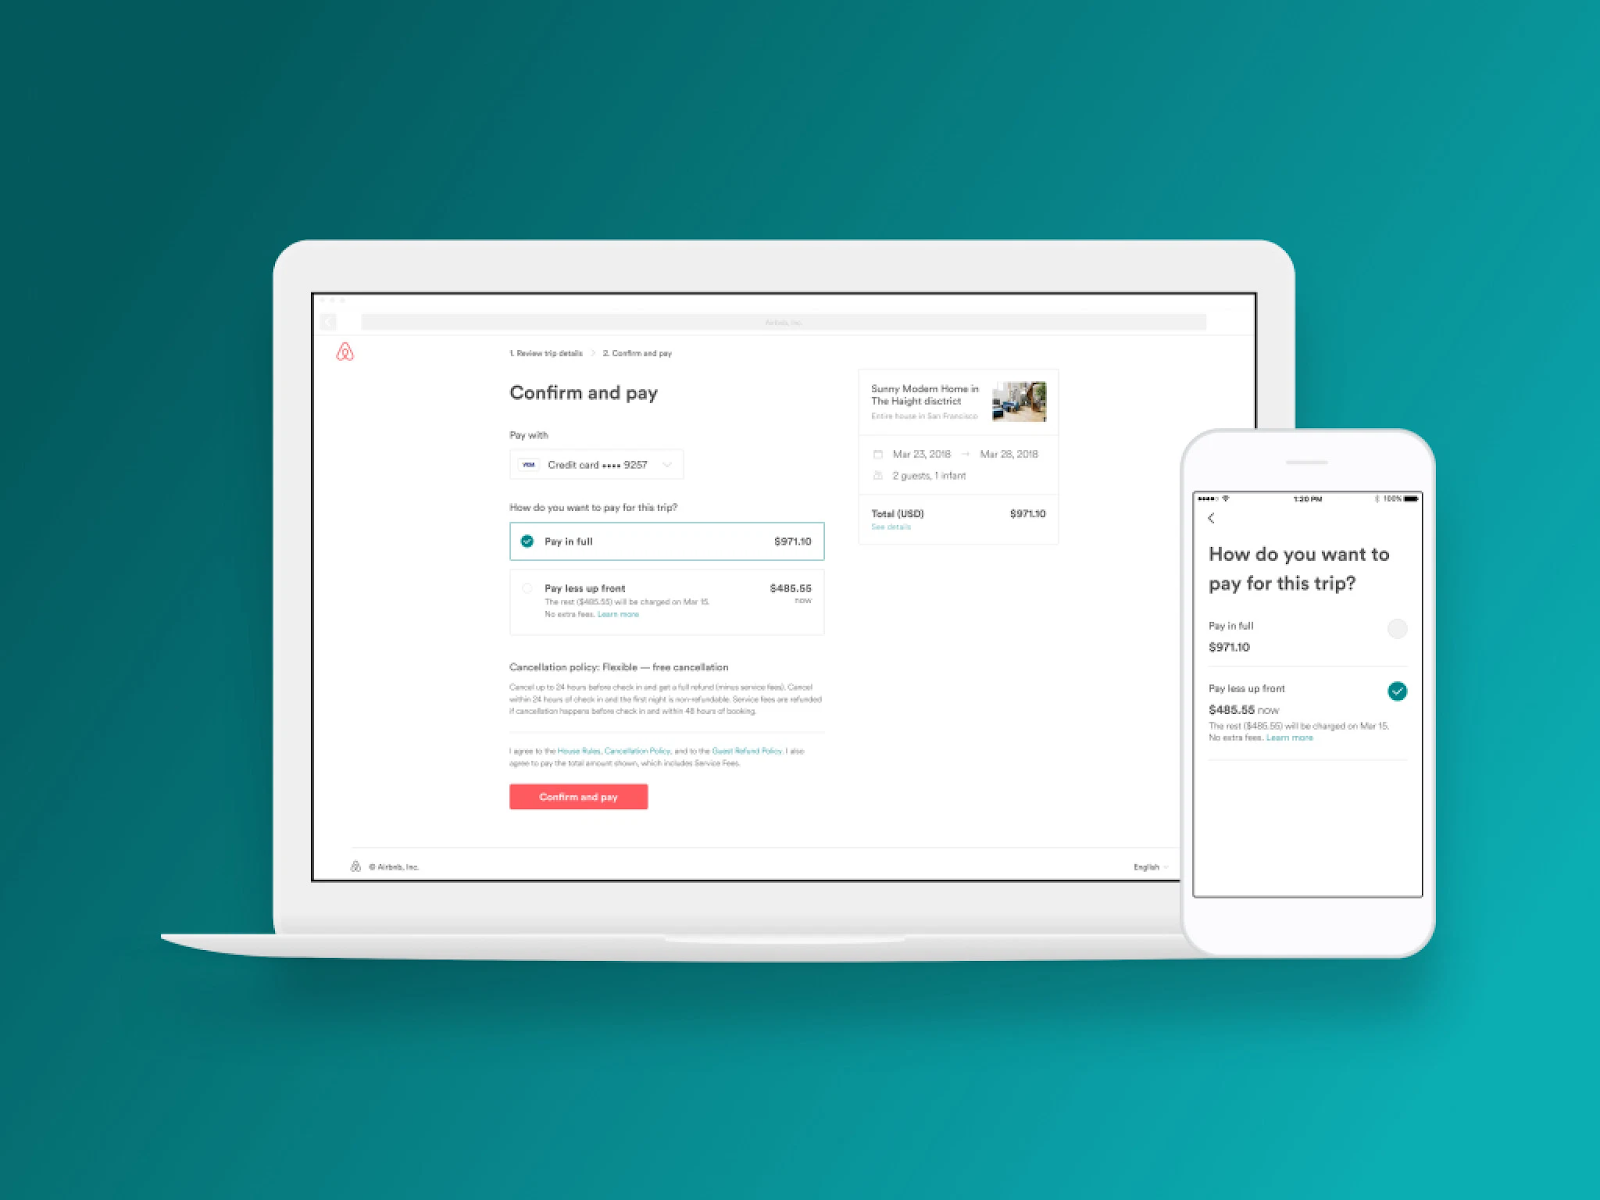 Airbnb's style guidelines for their payment flow are consistent on web and mobile.